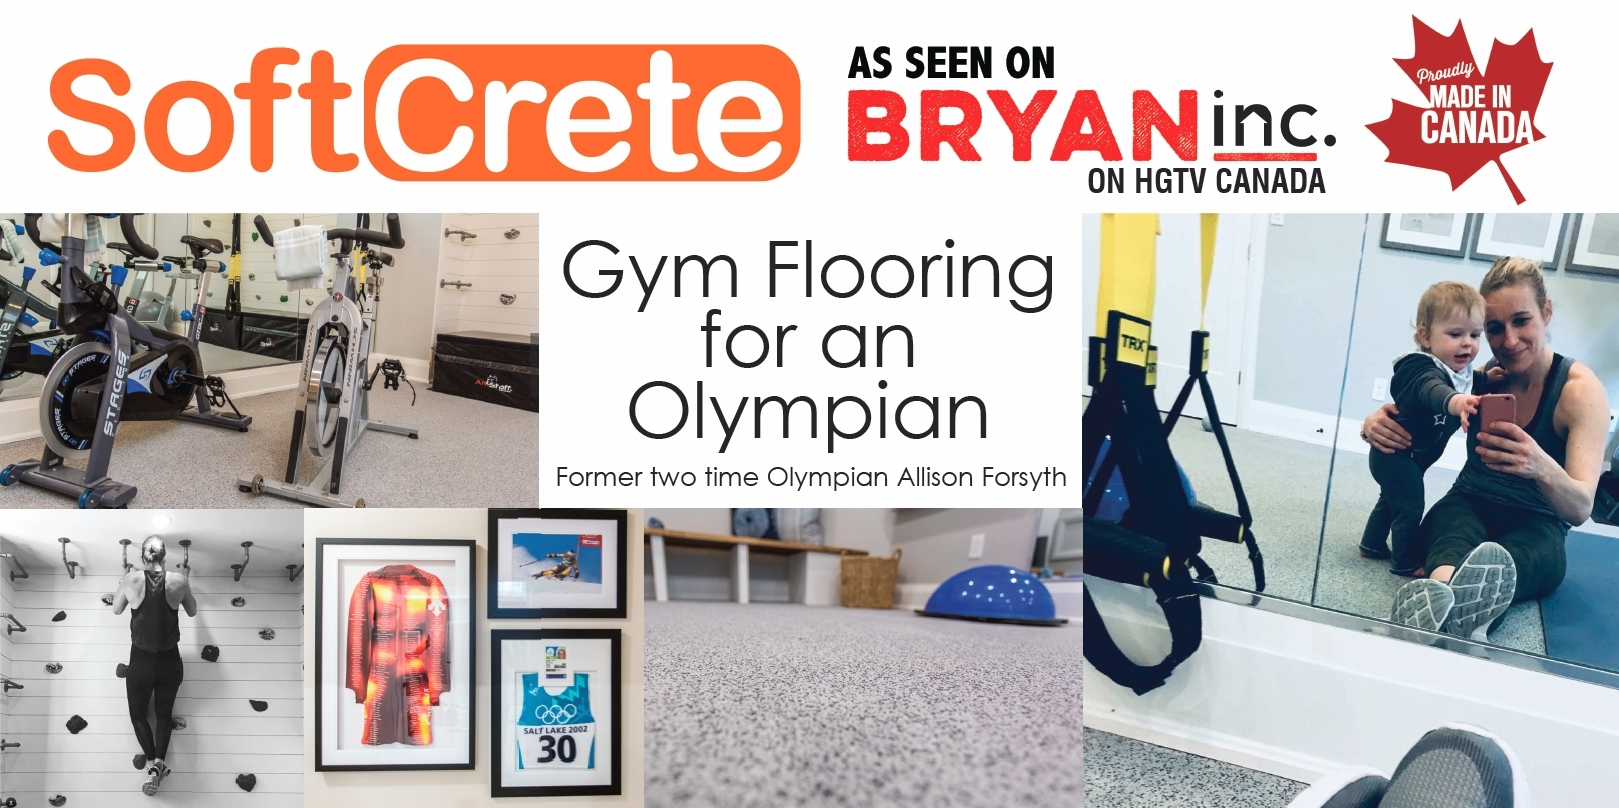 Gym Flooring fit for an Olympian